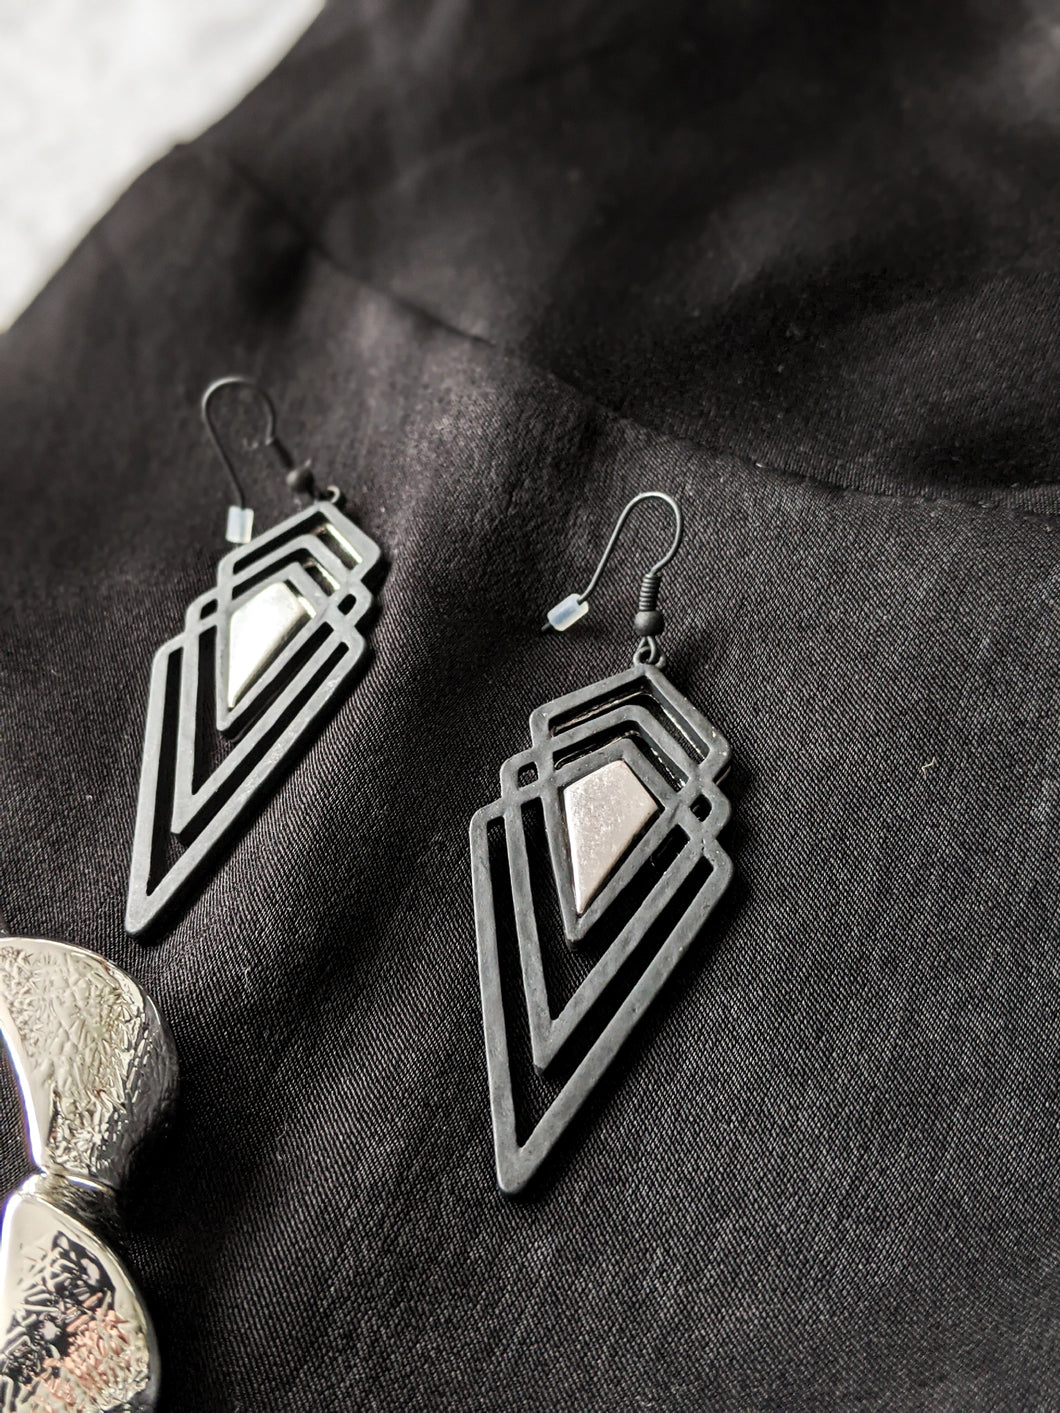 Black Boho Earrings - Shop Boho PR